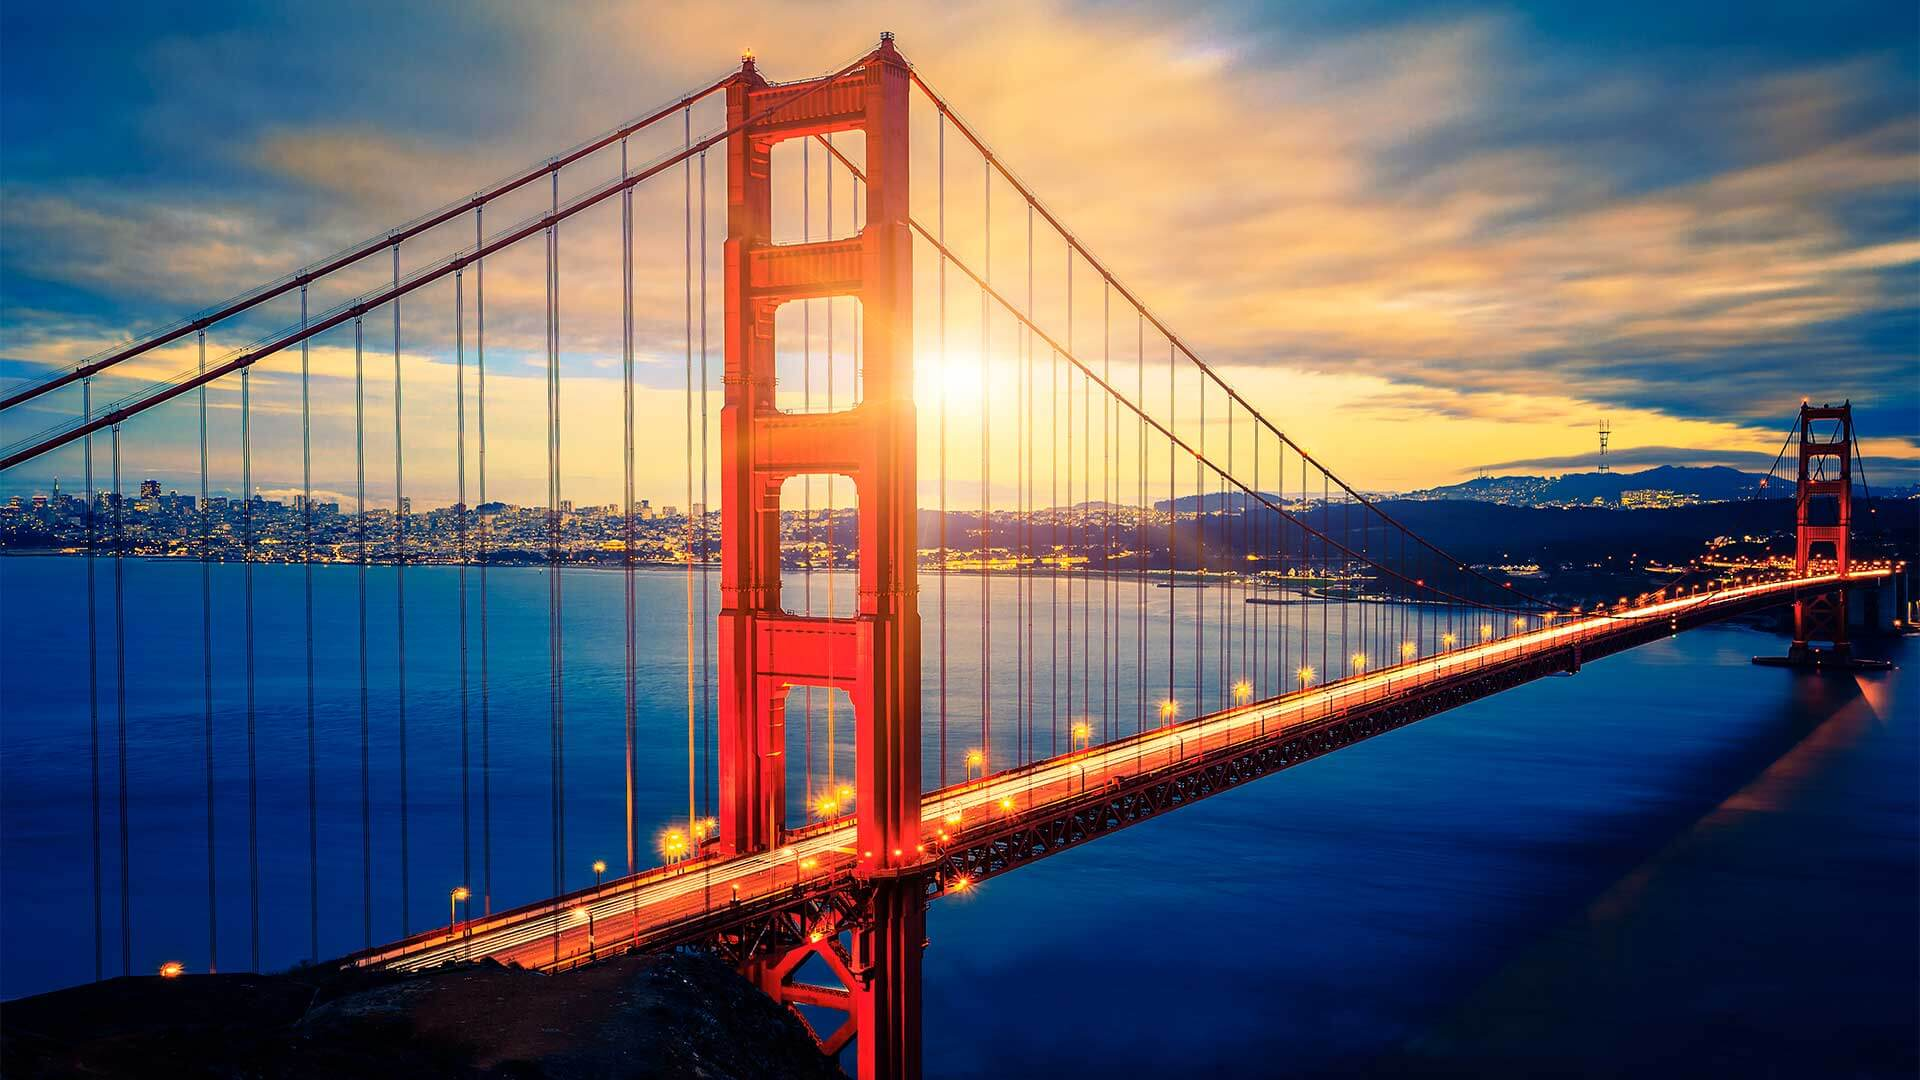 golden gate picture